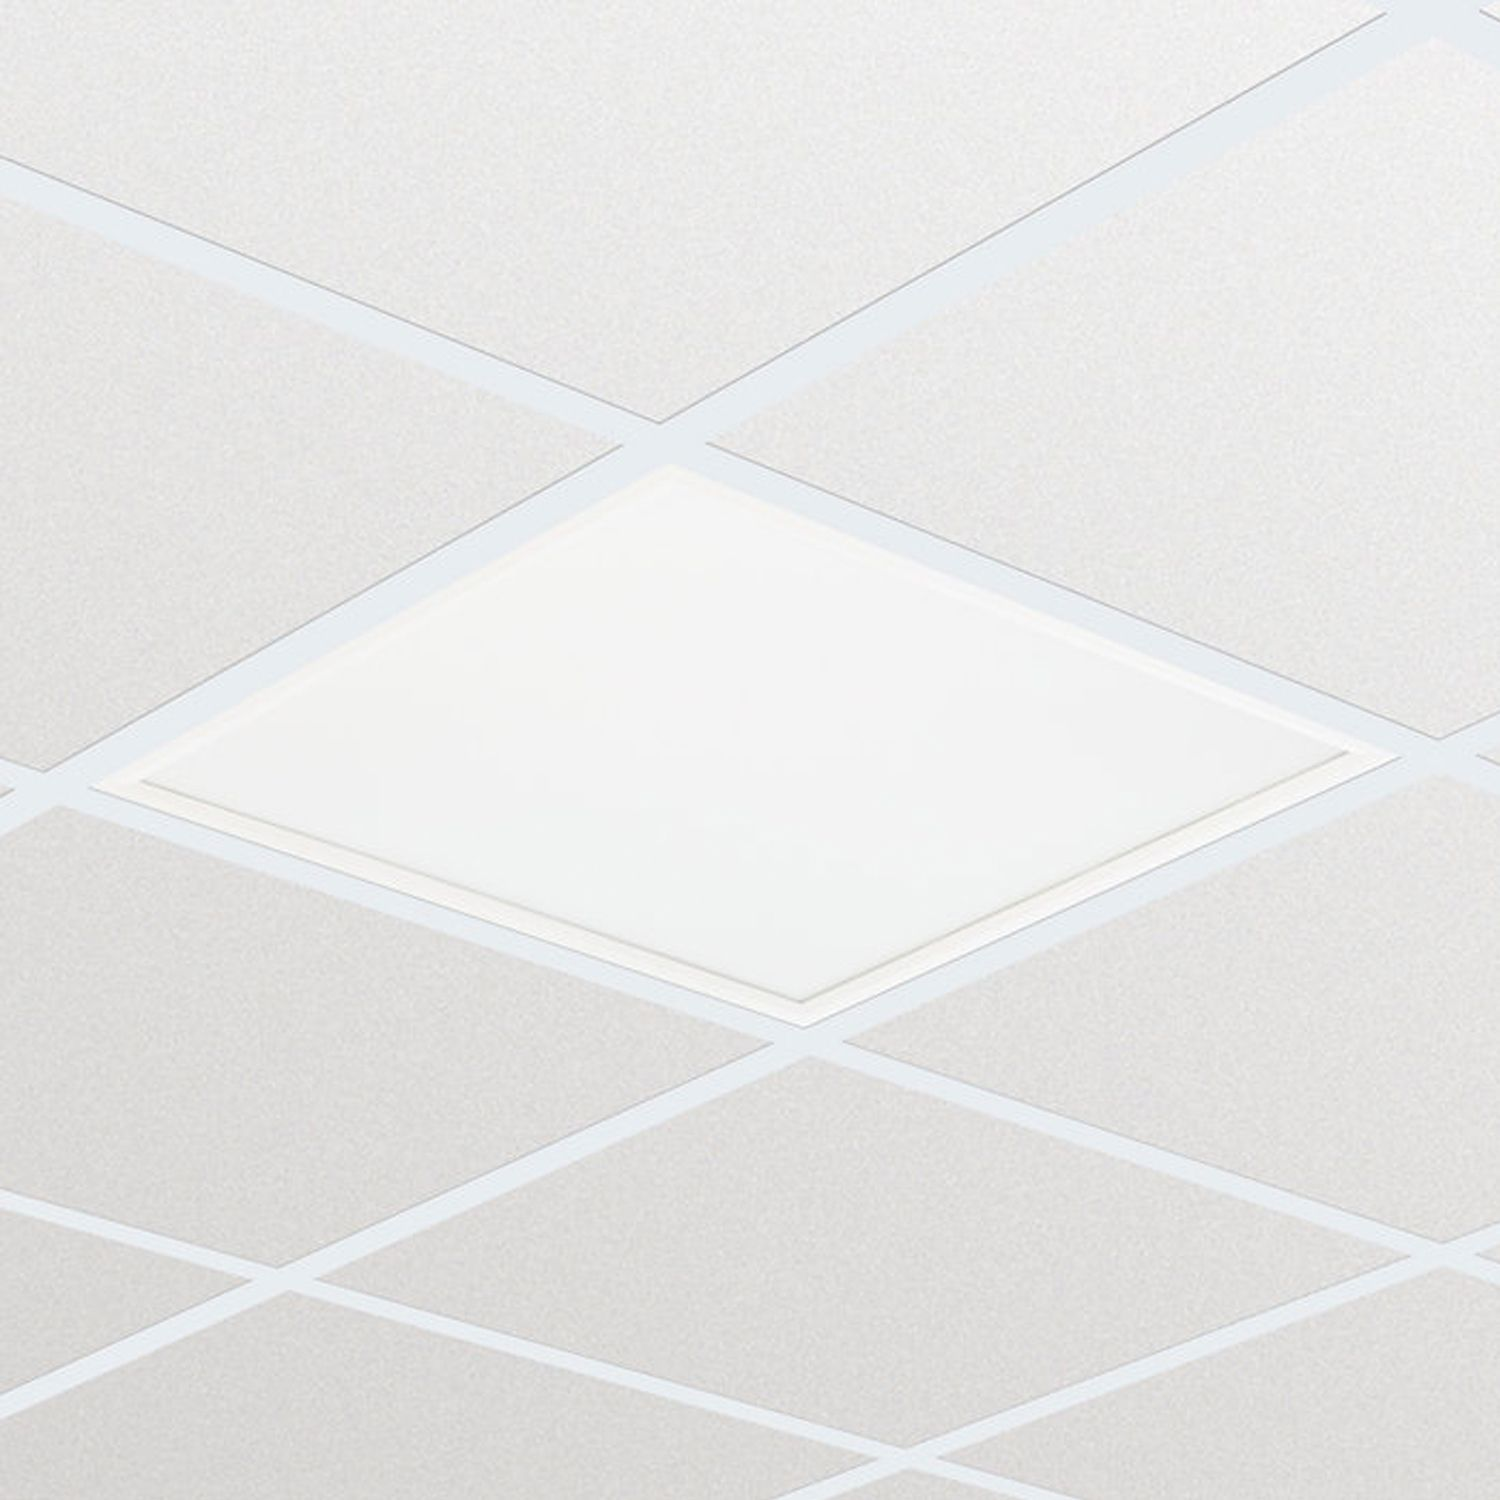 Philips LED Panel CoreLine RC132V G4 60x60cm 4000K 3600lm UGR <25 | Cool White - Replaces 4x18W